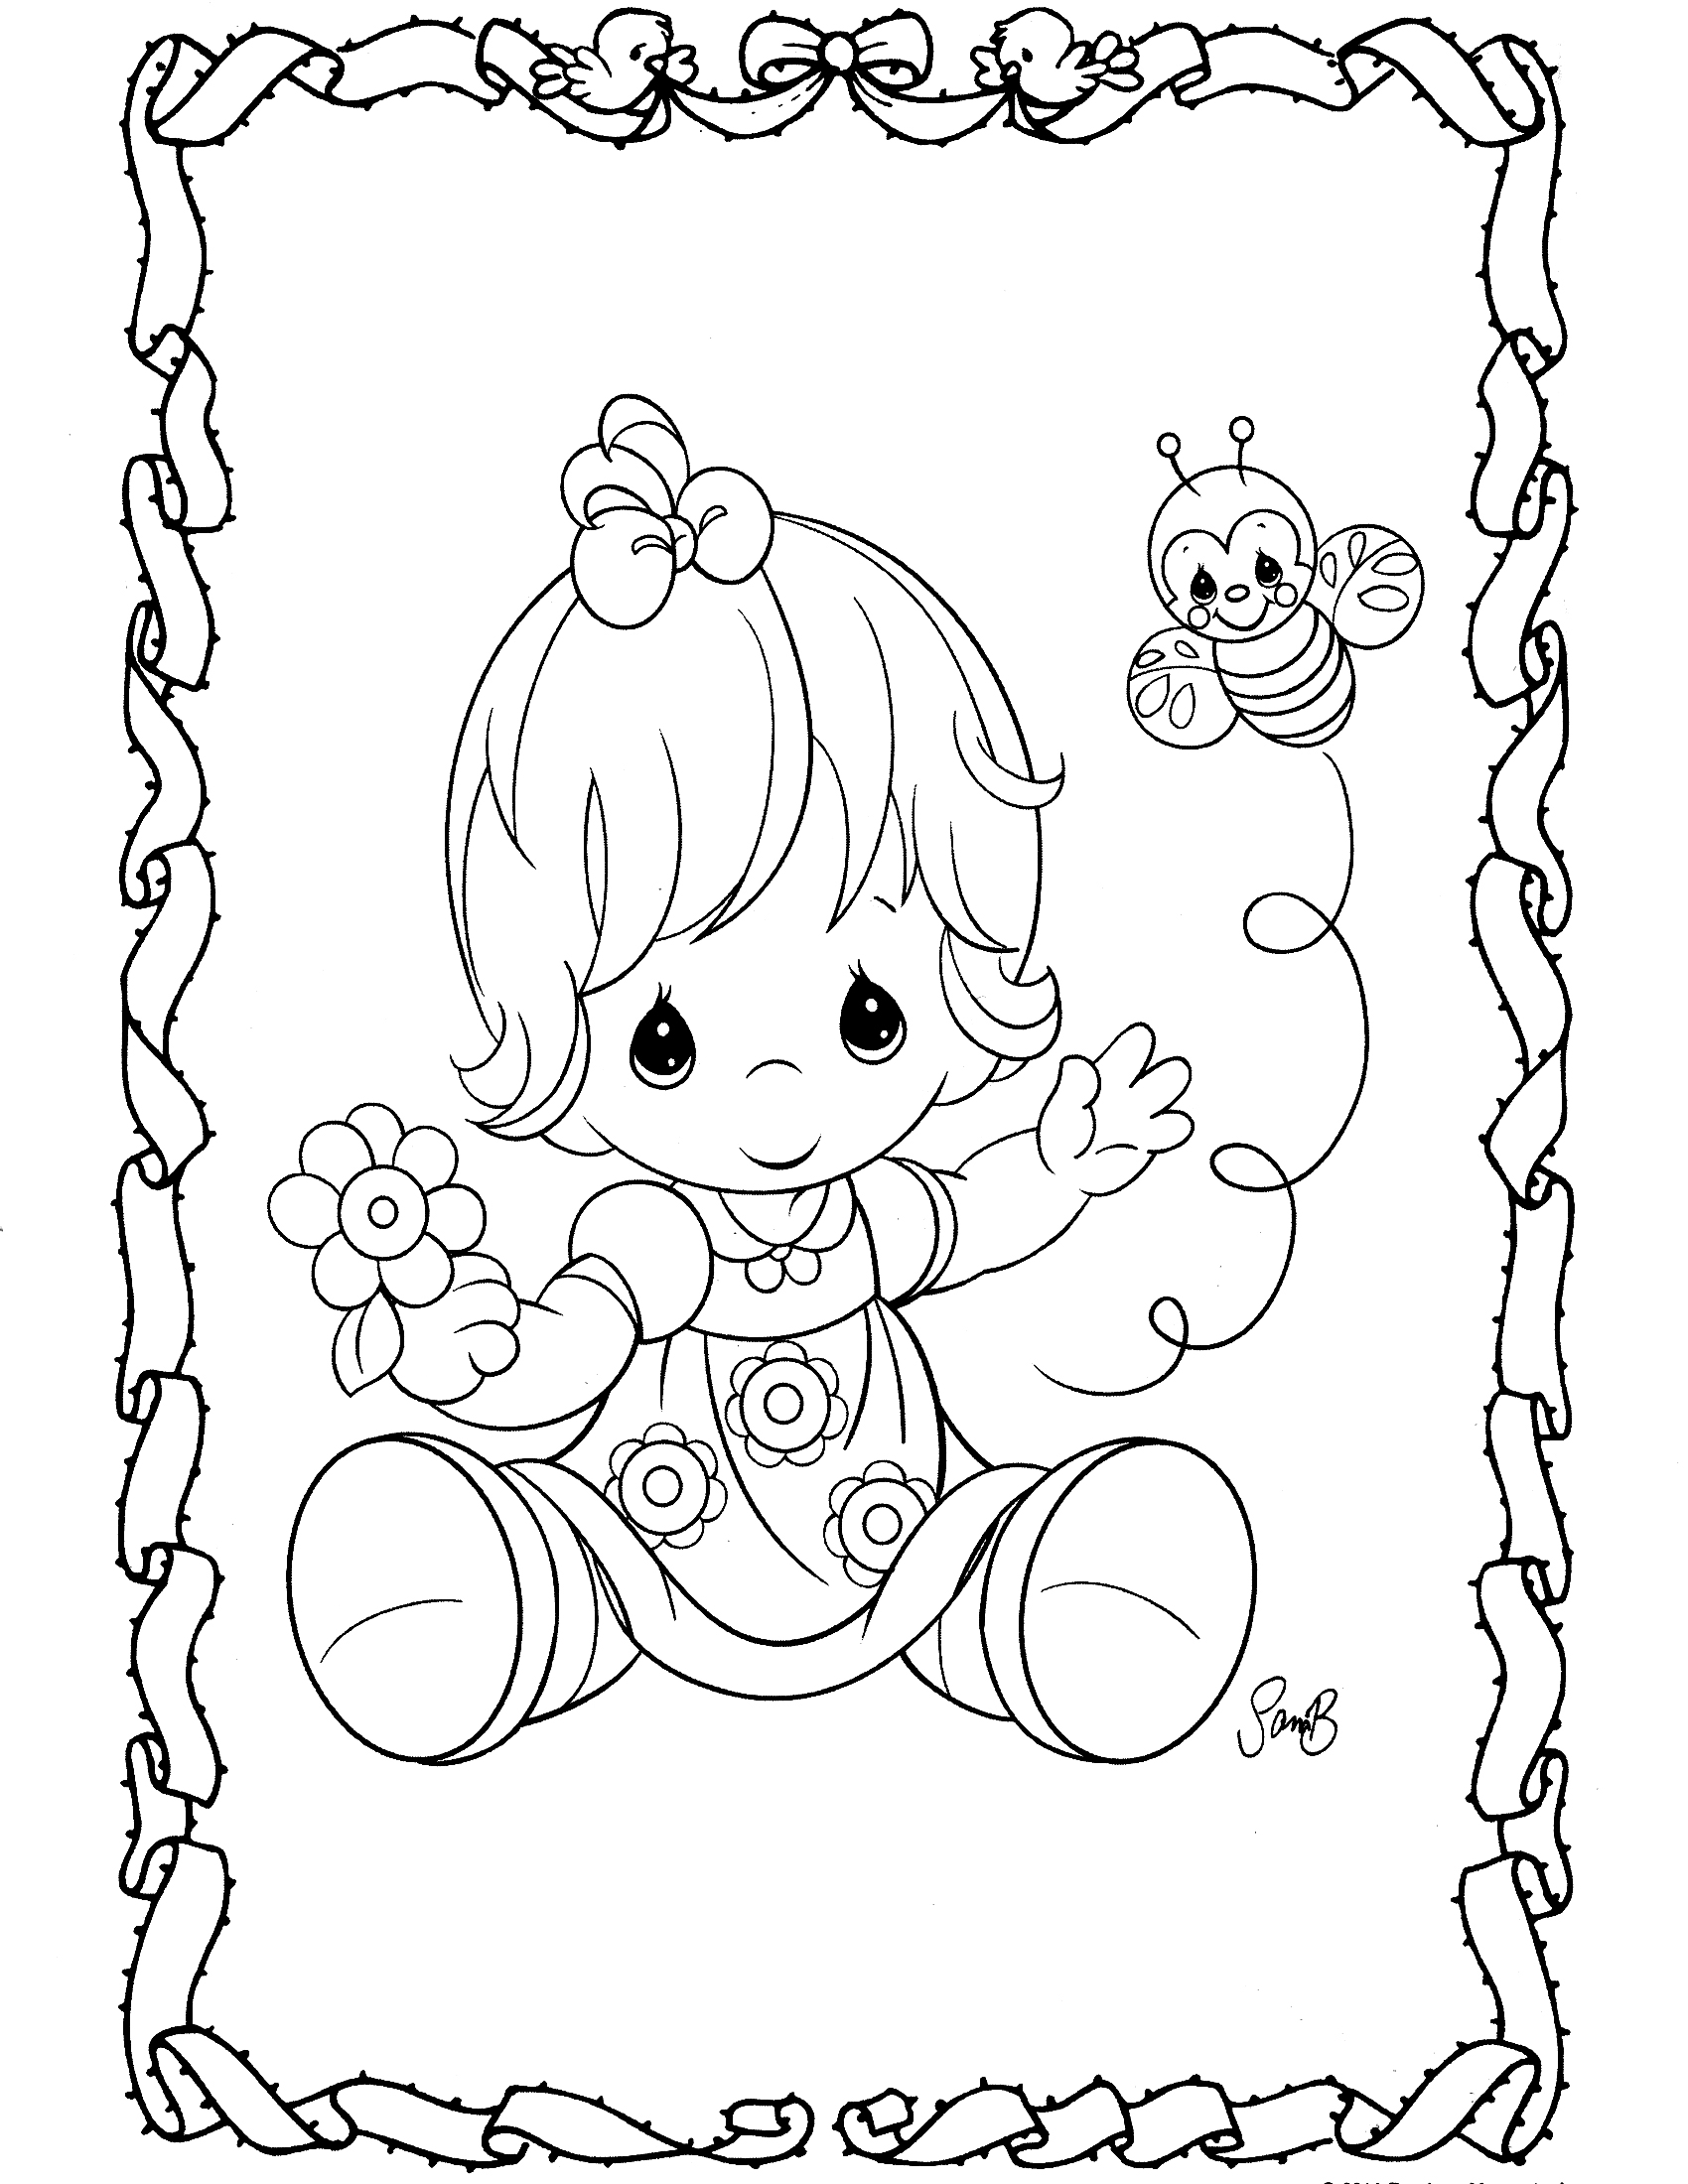 Baby Precious Moments Coloring Pages At Getdrawings Com Free For